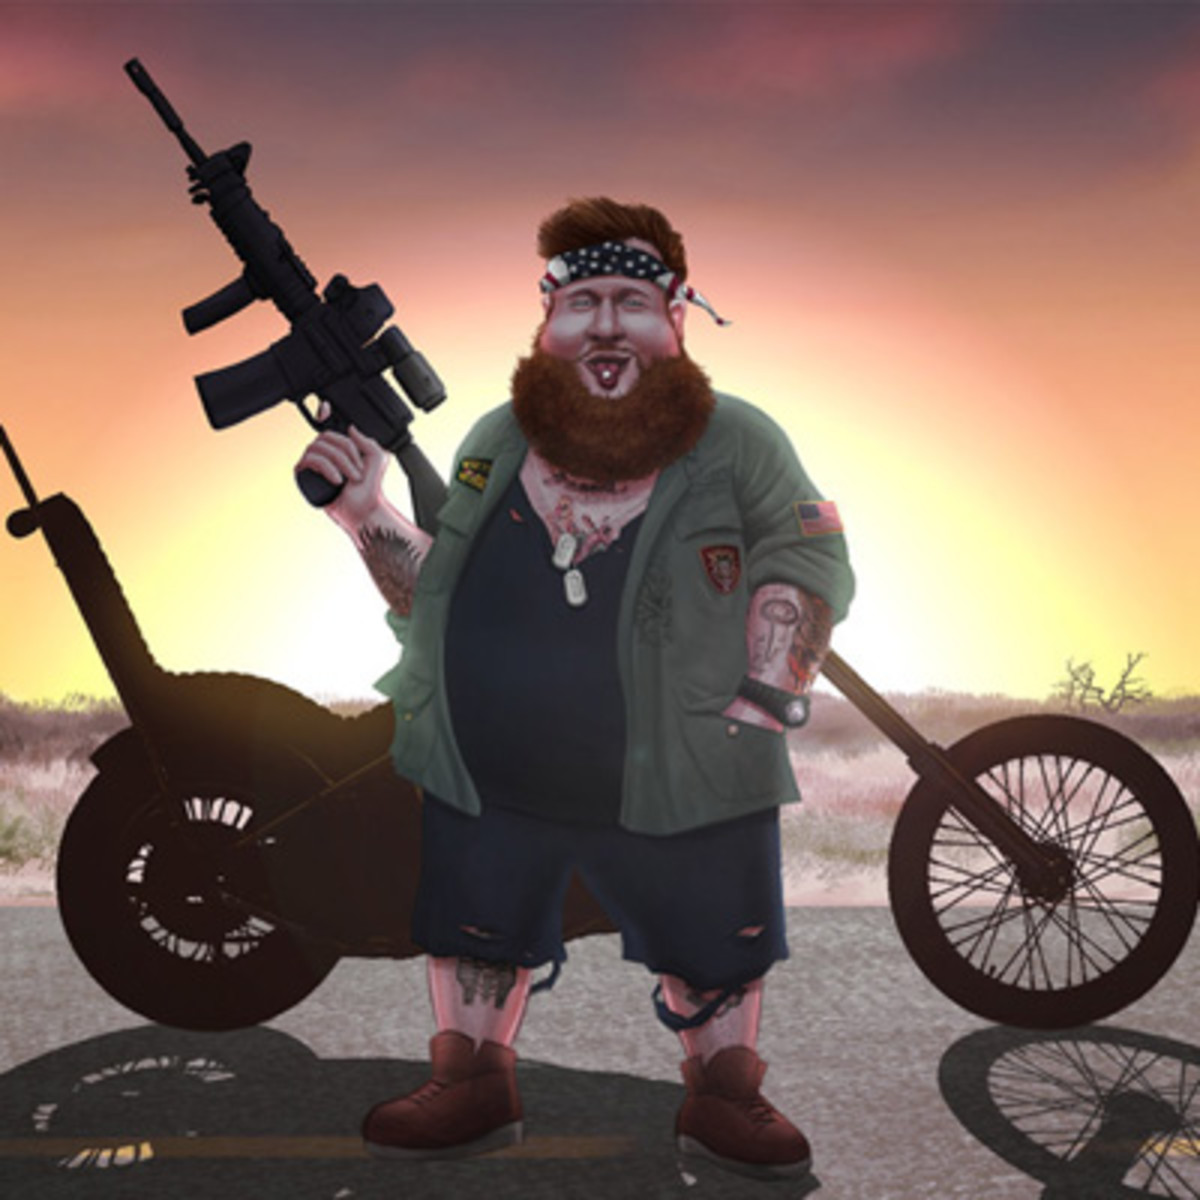 action-bronson-easy-rider-art.jpg